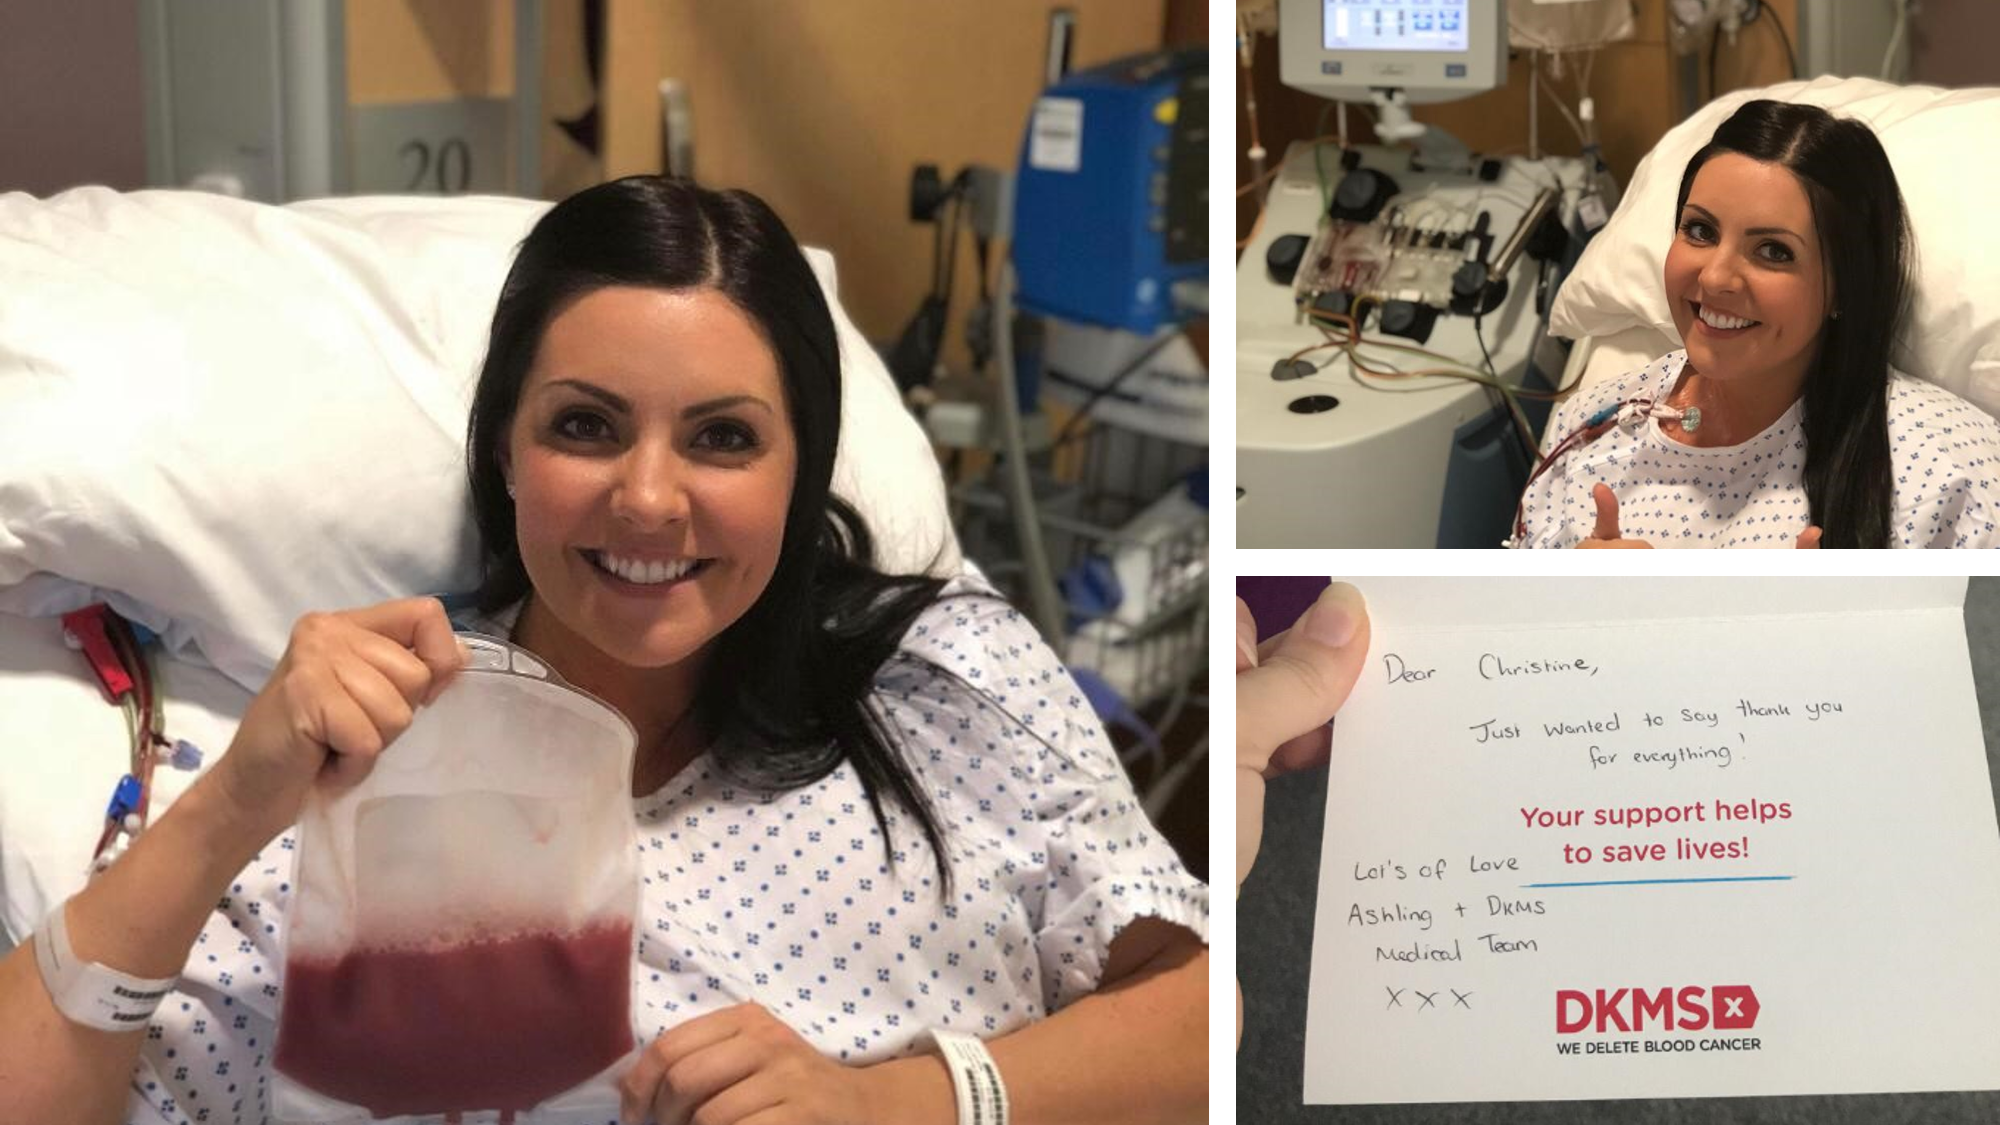 Christine Kerr stem cell donation pictures